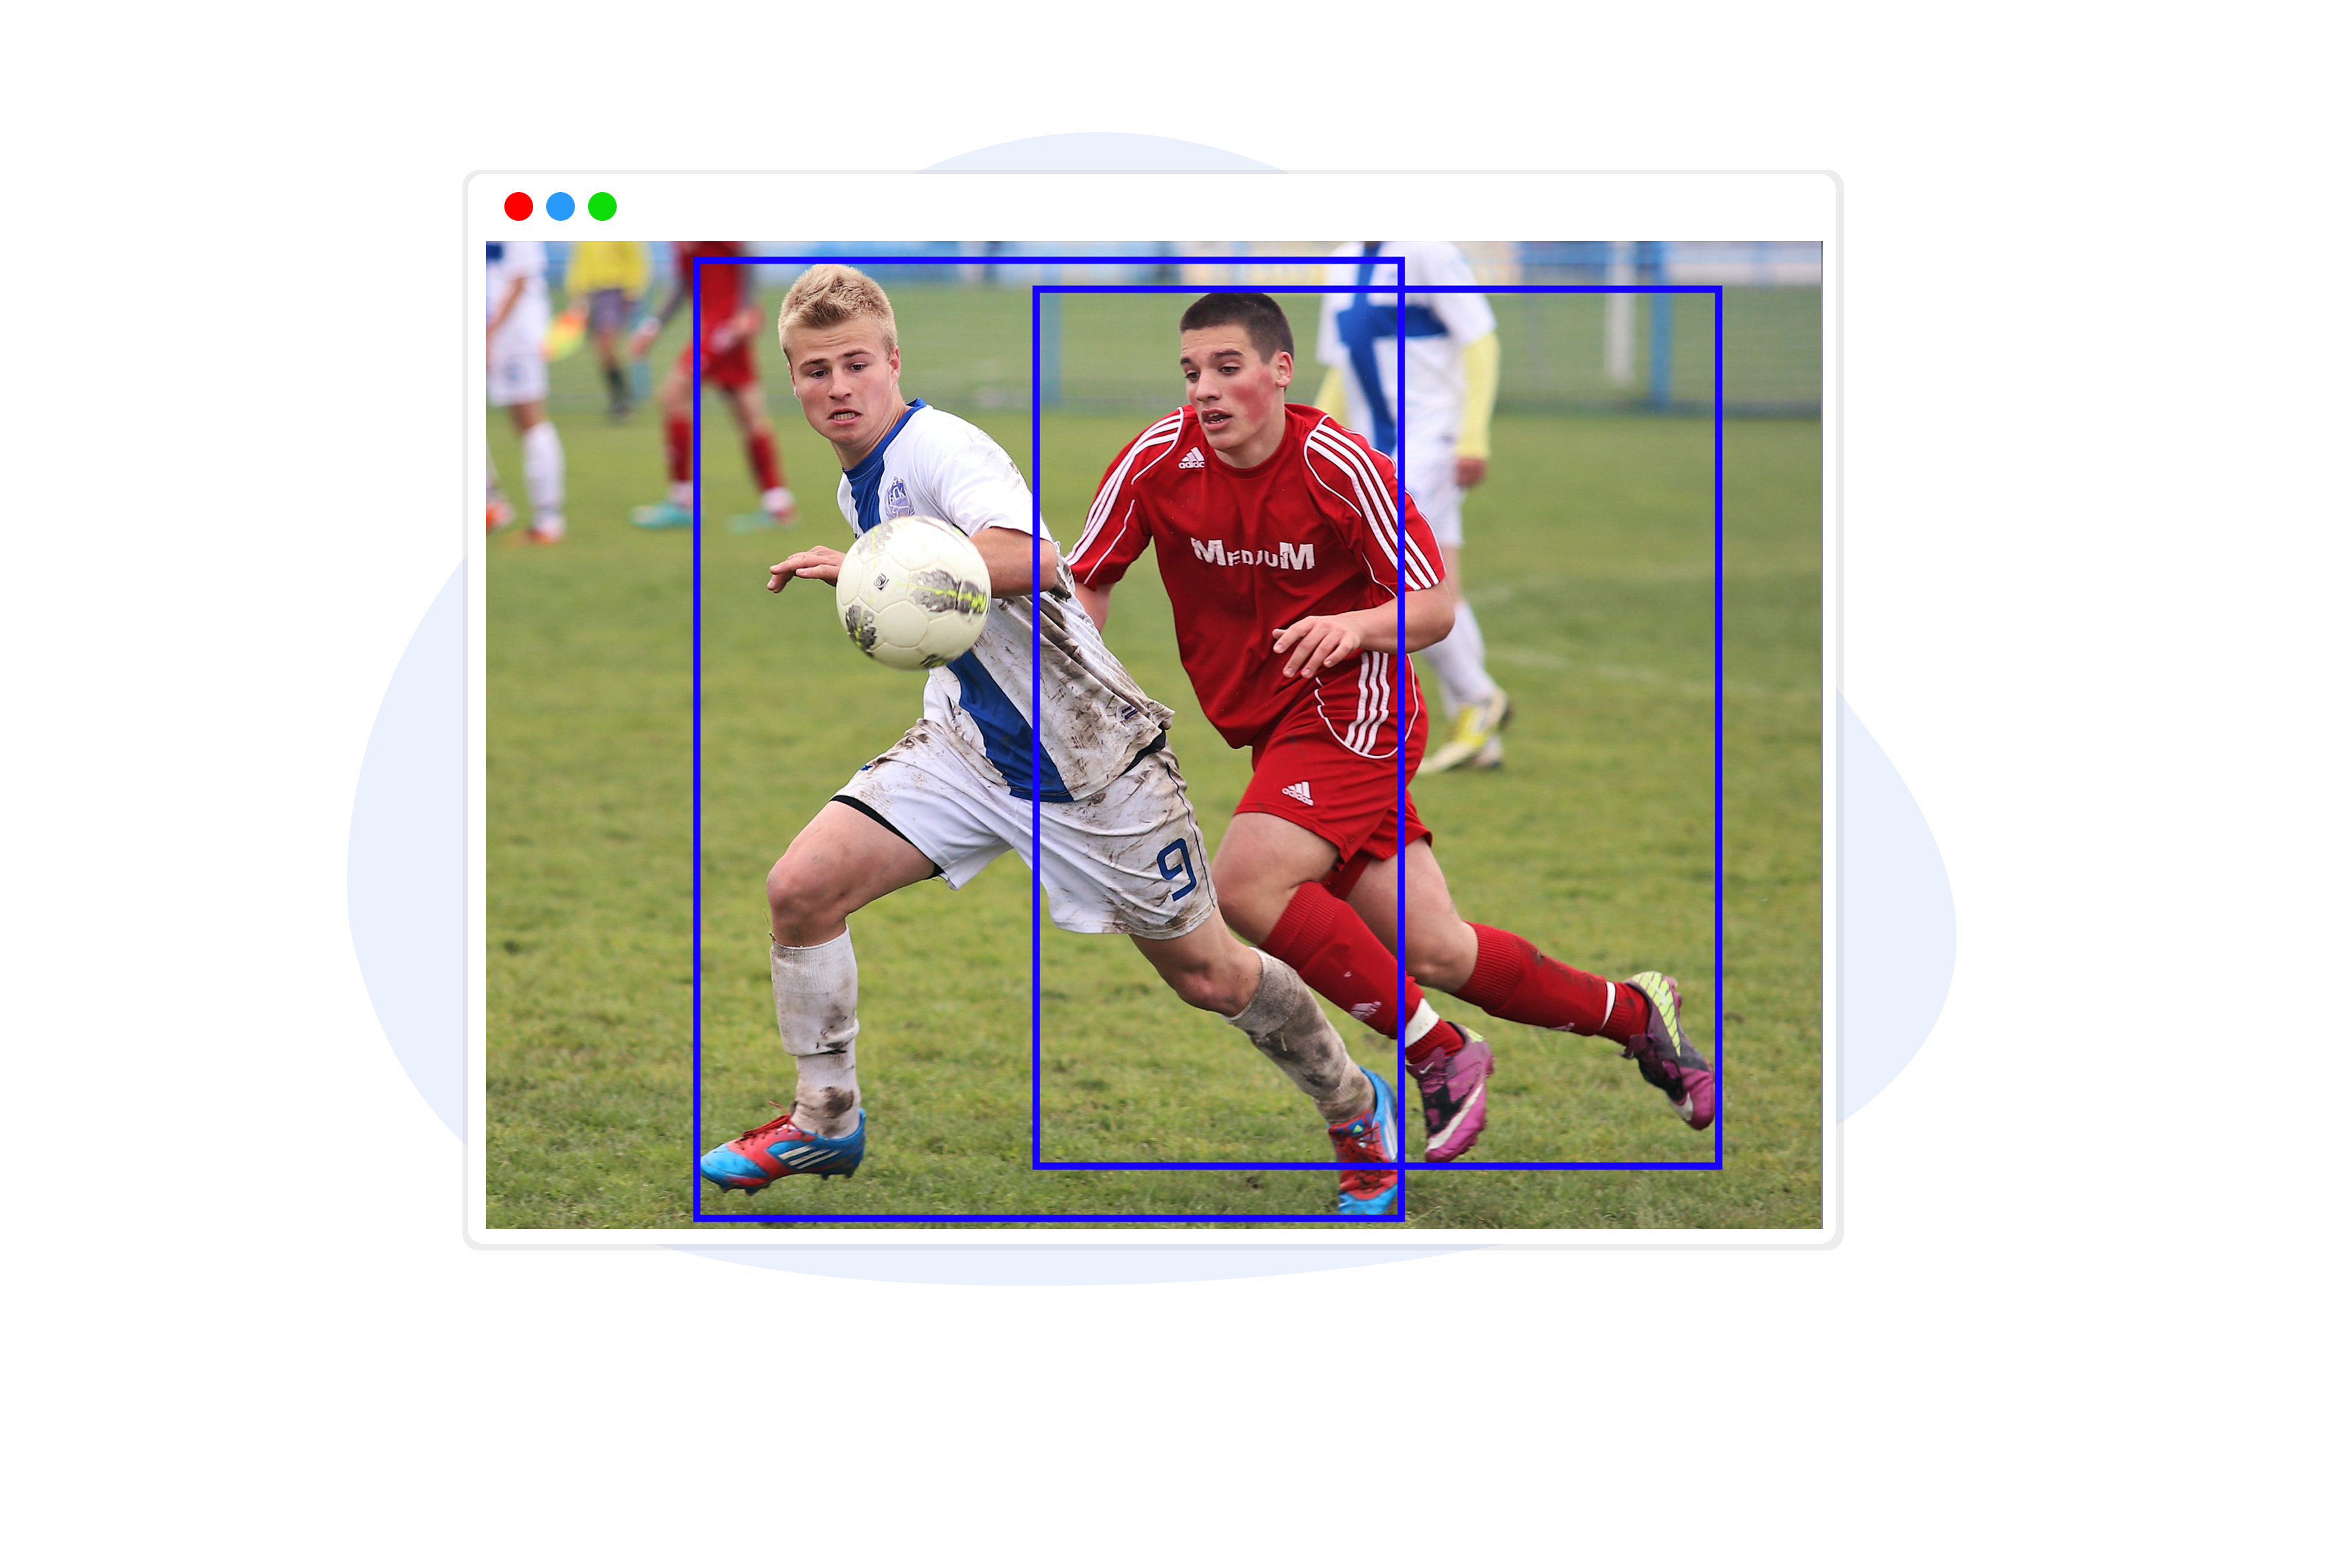 Track the Player Image Annotation